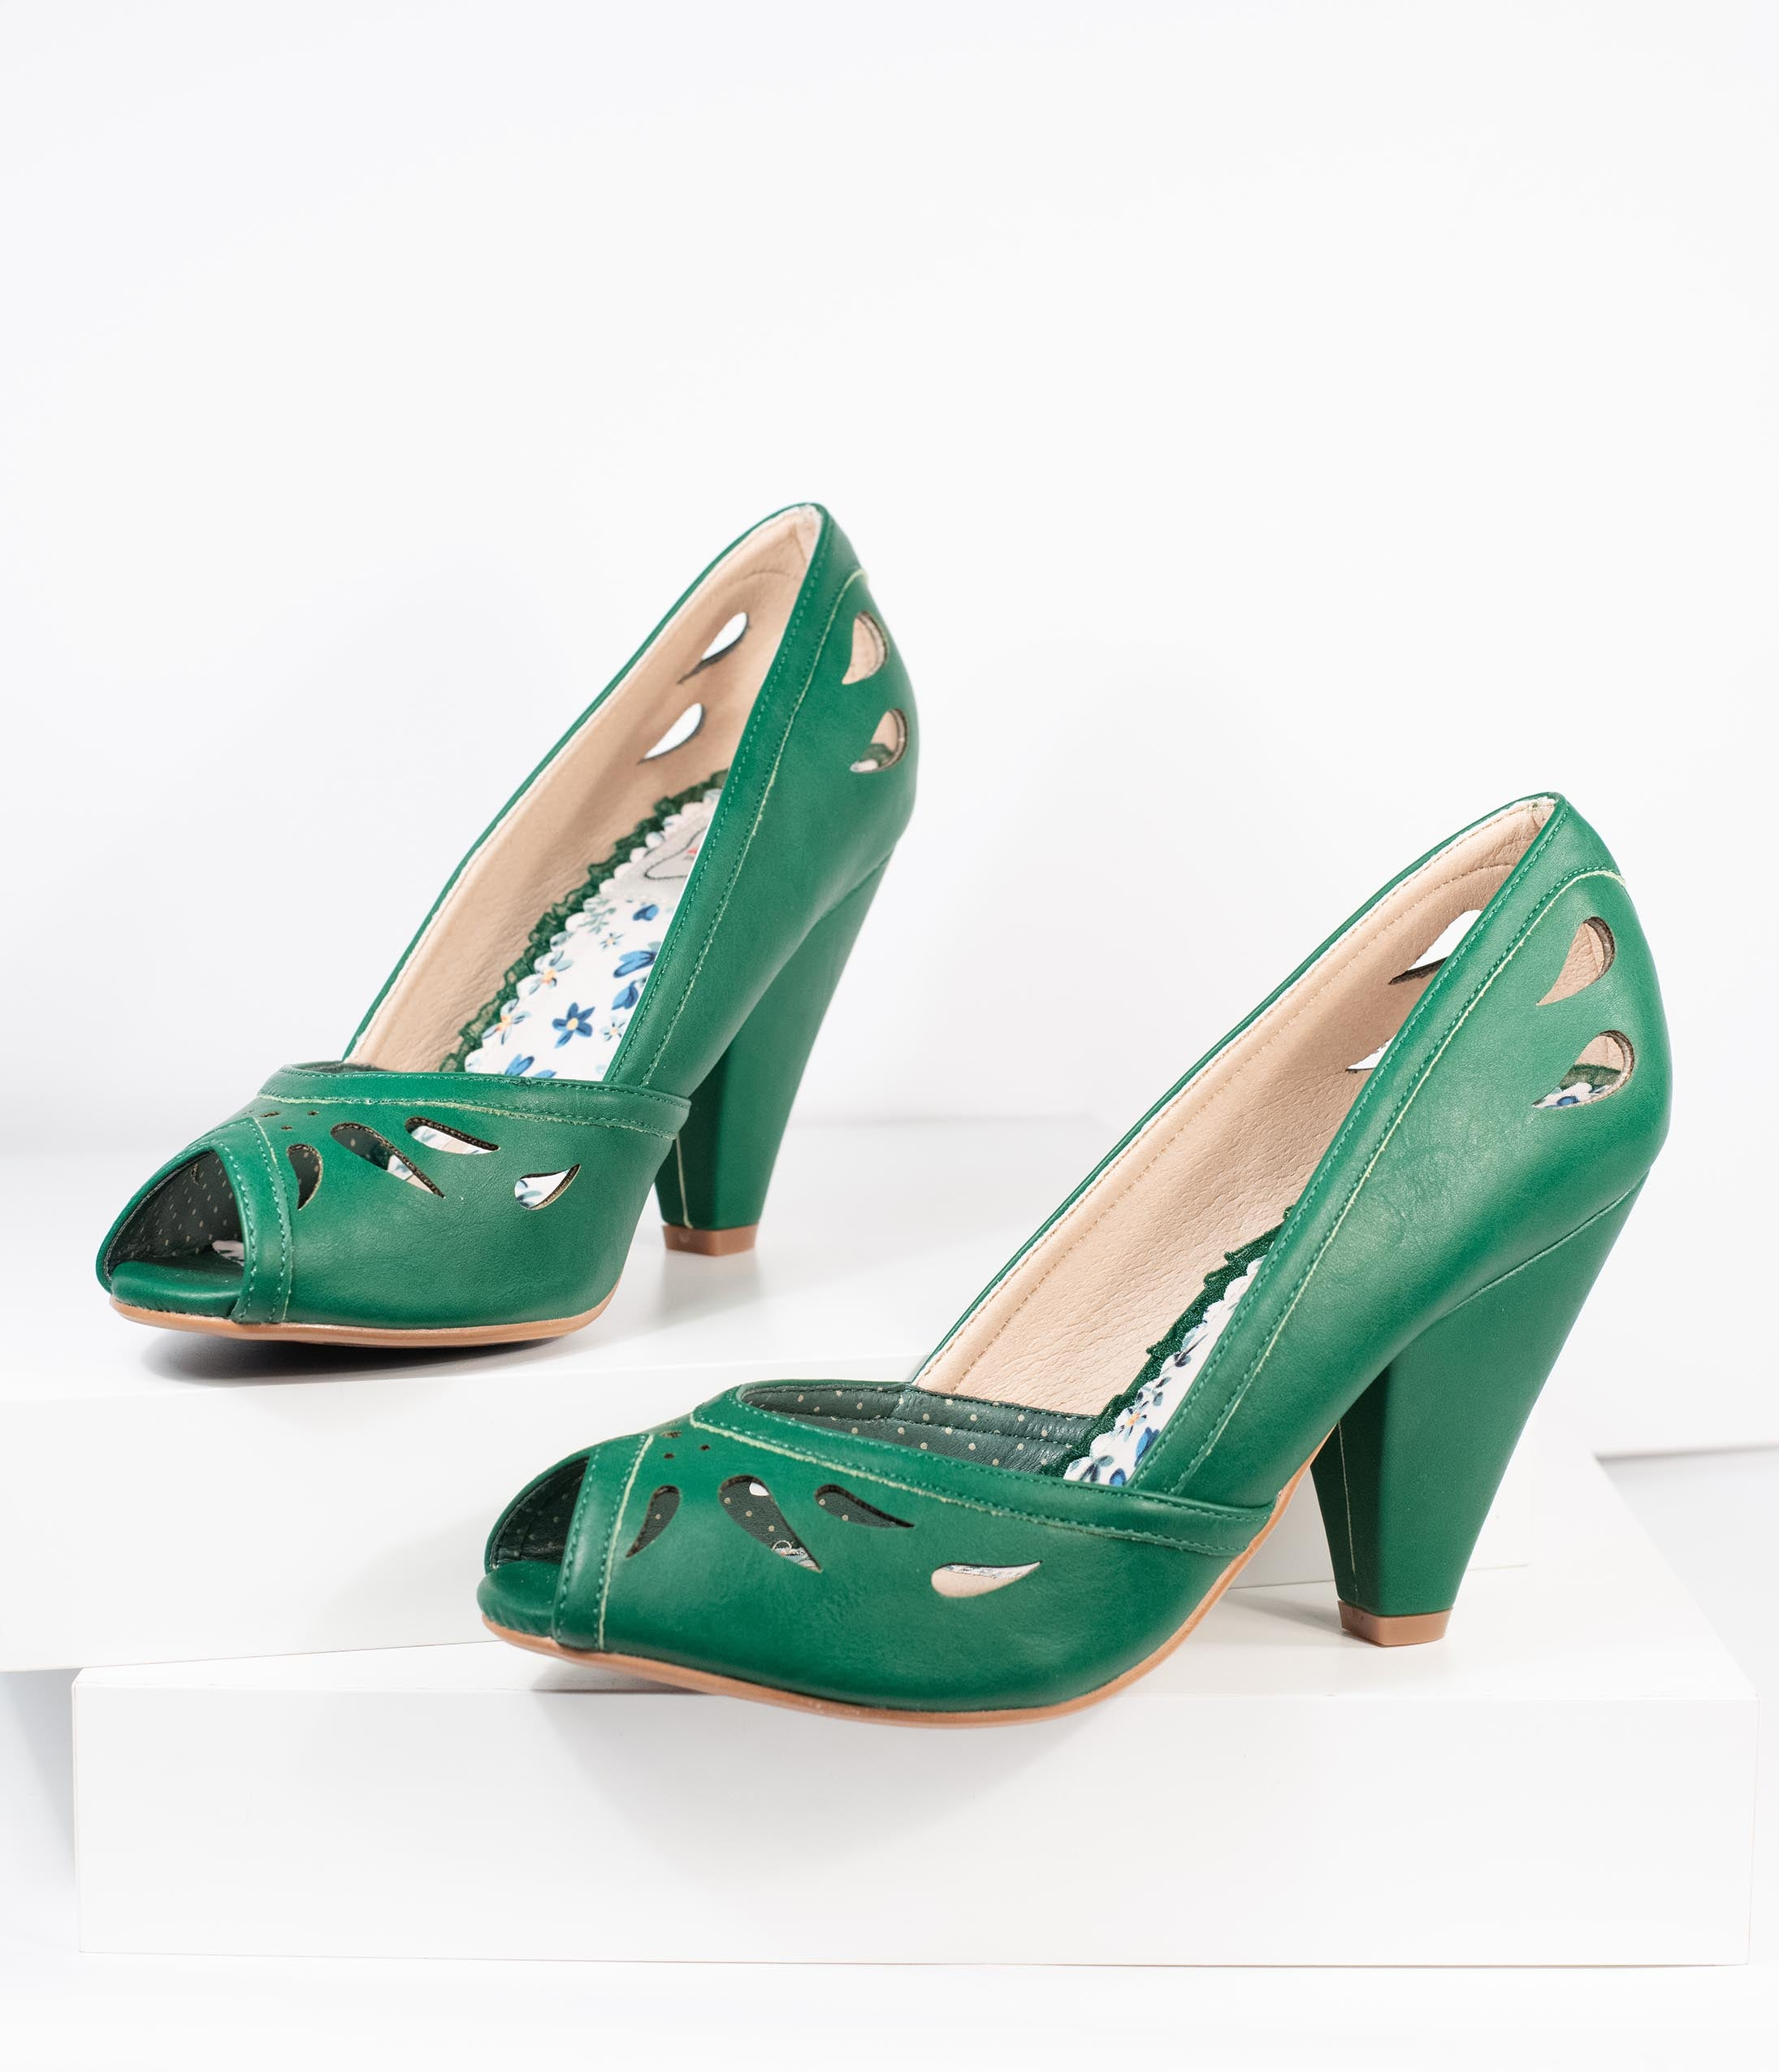 Rockabilly Shoes- Heels, Pumps, Boots, Flats Bettie Page Green Leatherette Peep Toe Marilyn Pumps $88.00 AT vintagedancer.com